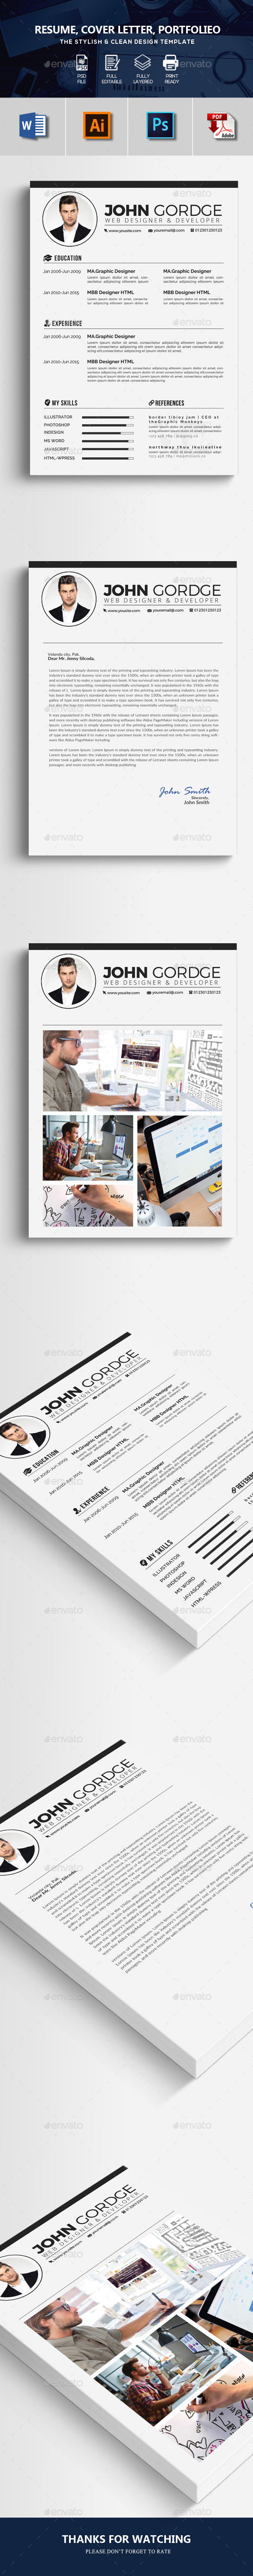 3 Pages Resume CV Template - Resumes Stationery